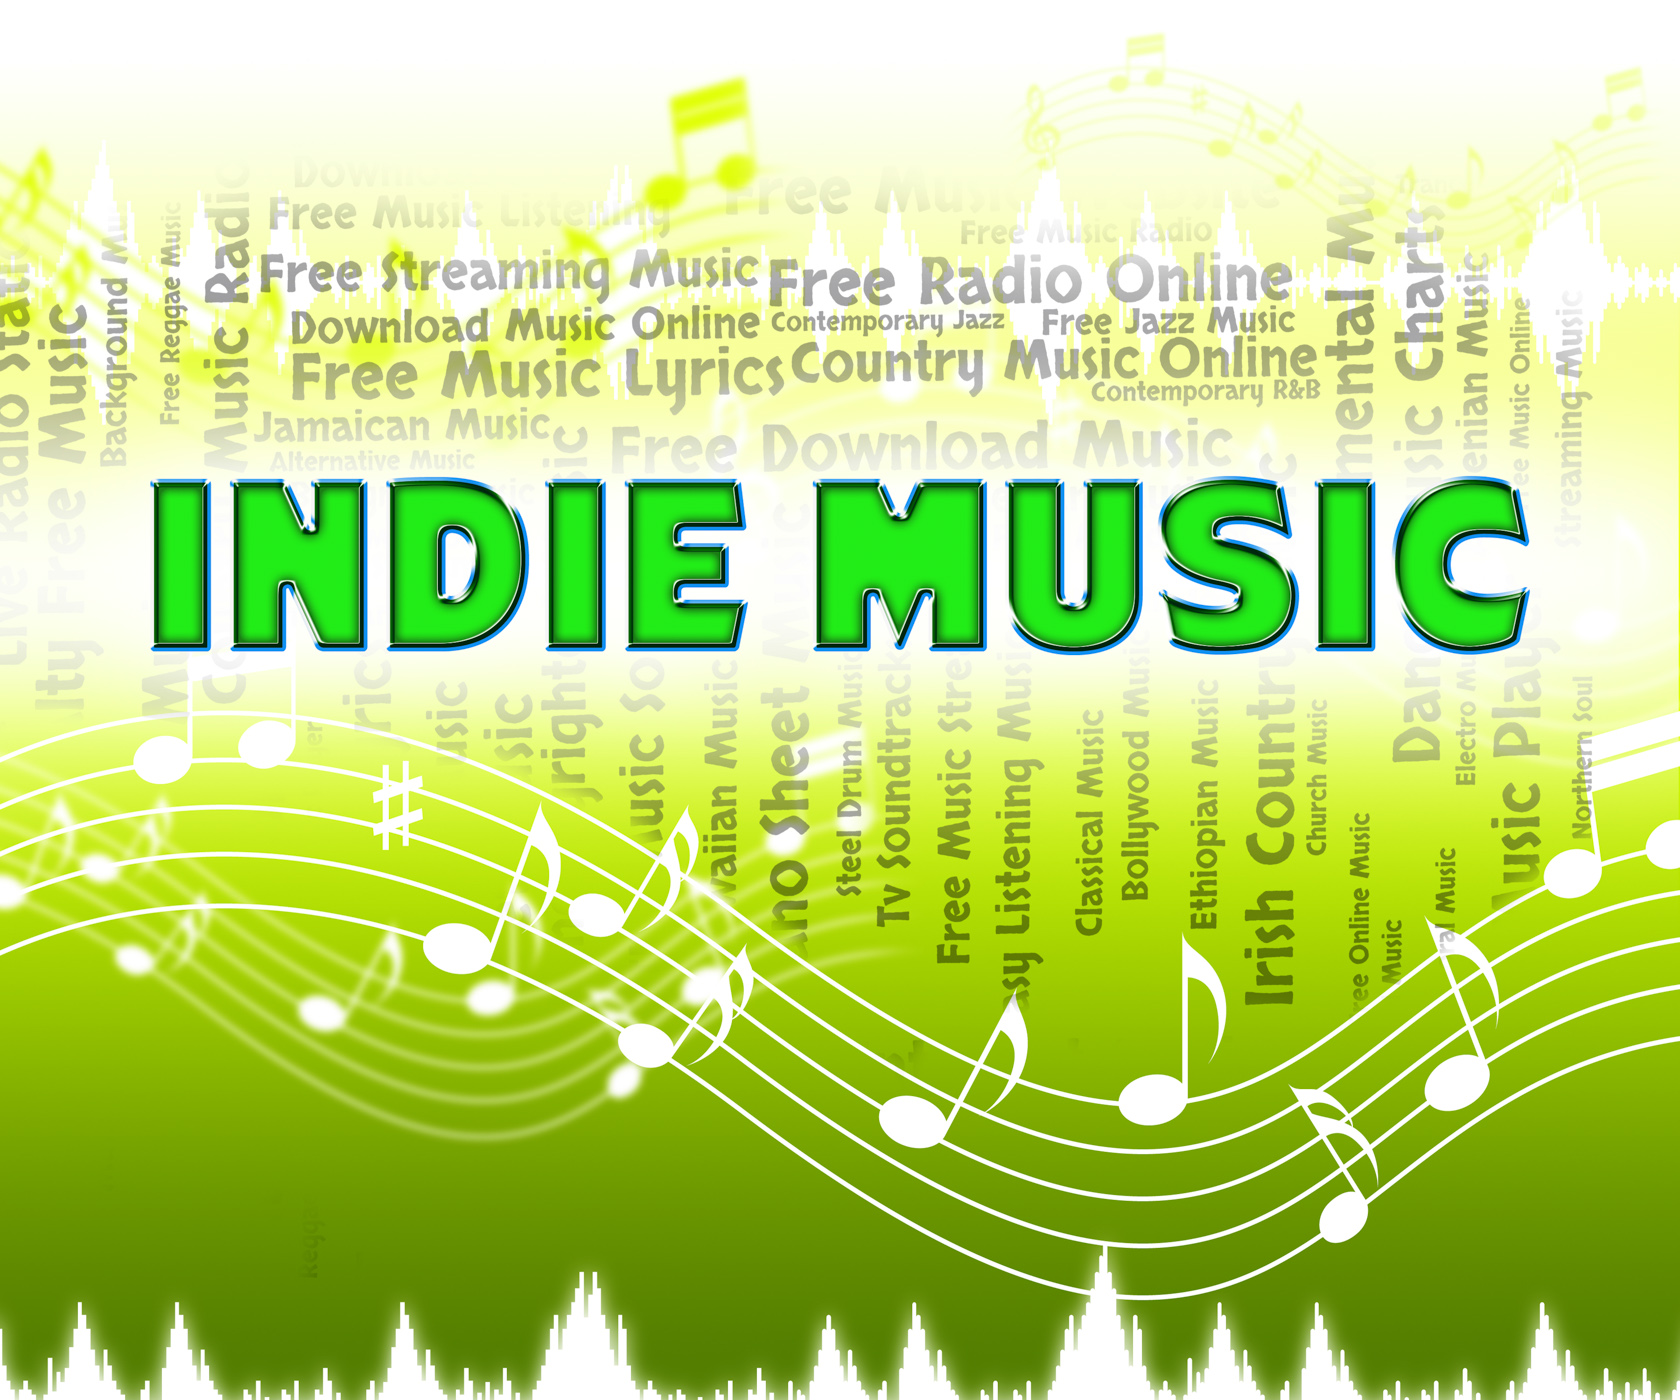 Free photo: Indie Music Shows Sound Tracks And Acoustic